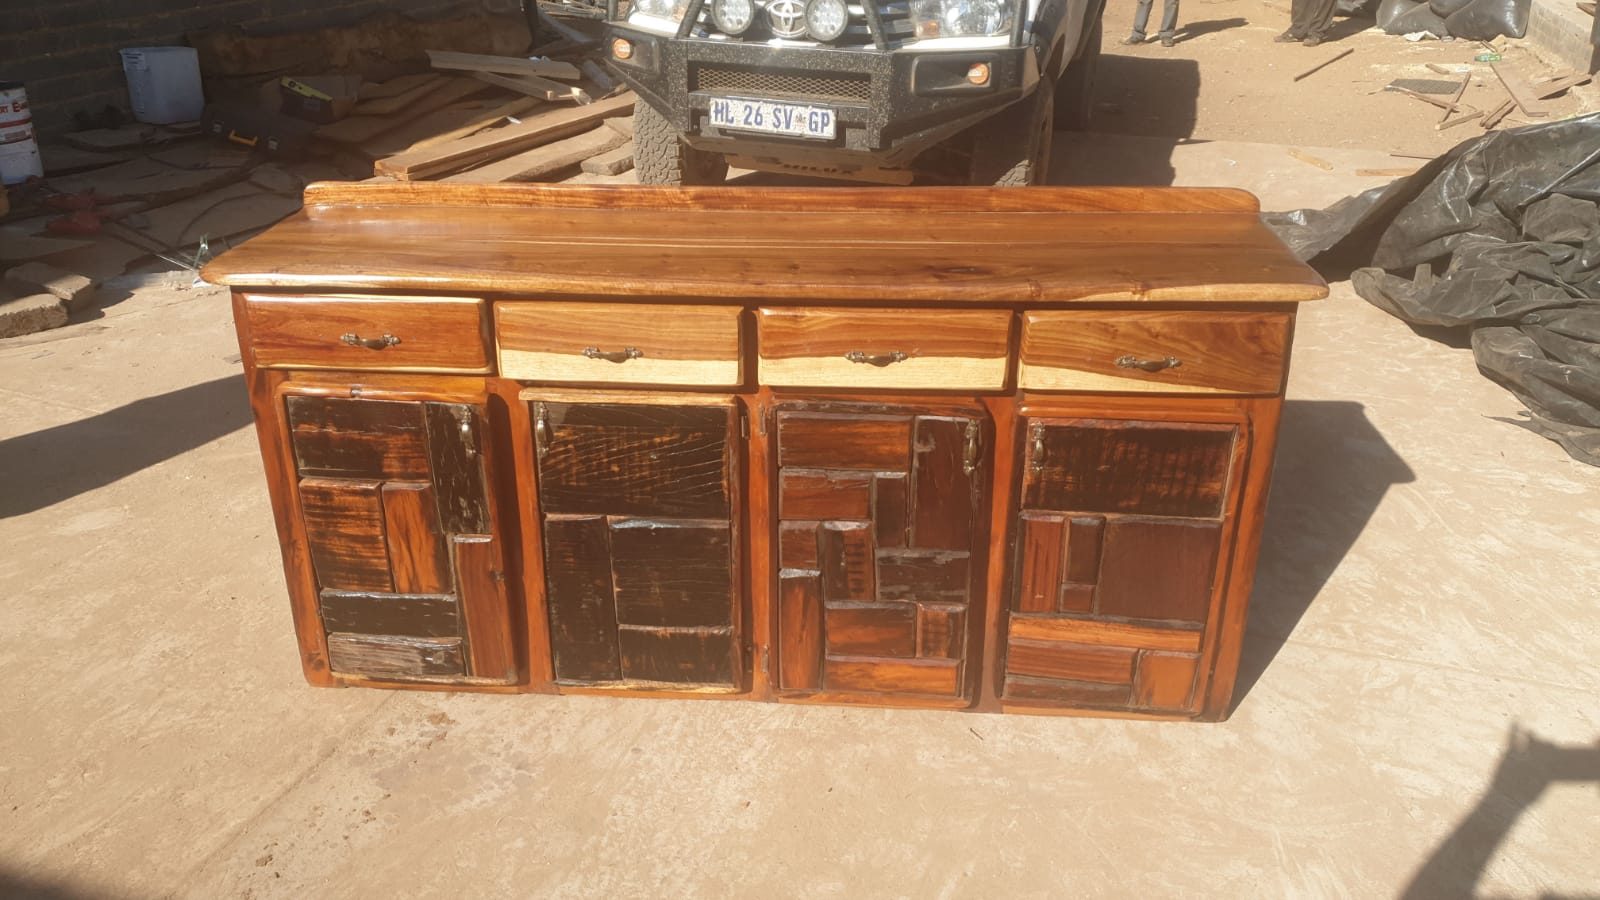 4 laai  kas. 4 drawer cabinet sleeper wood